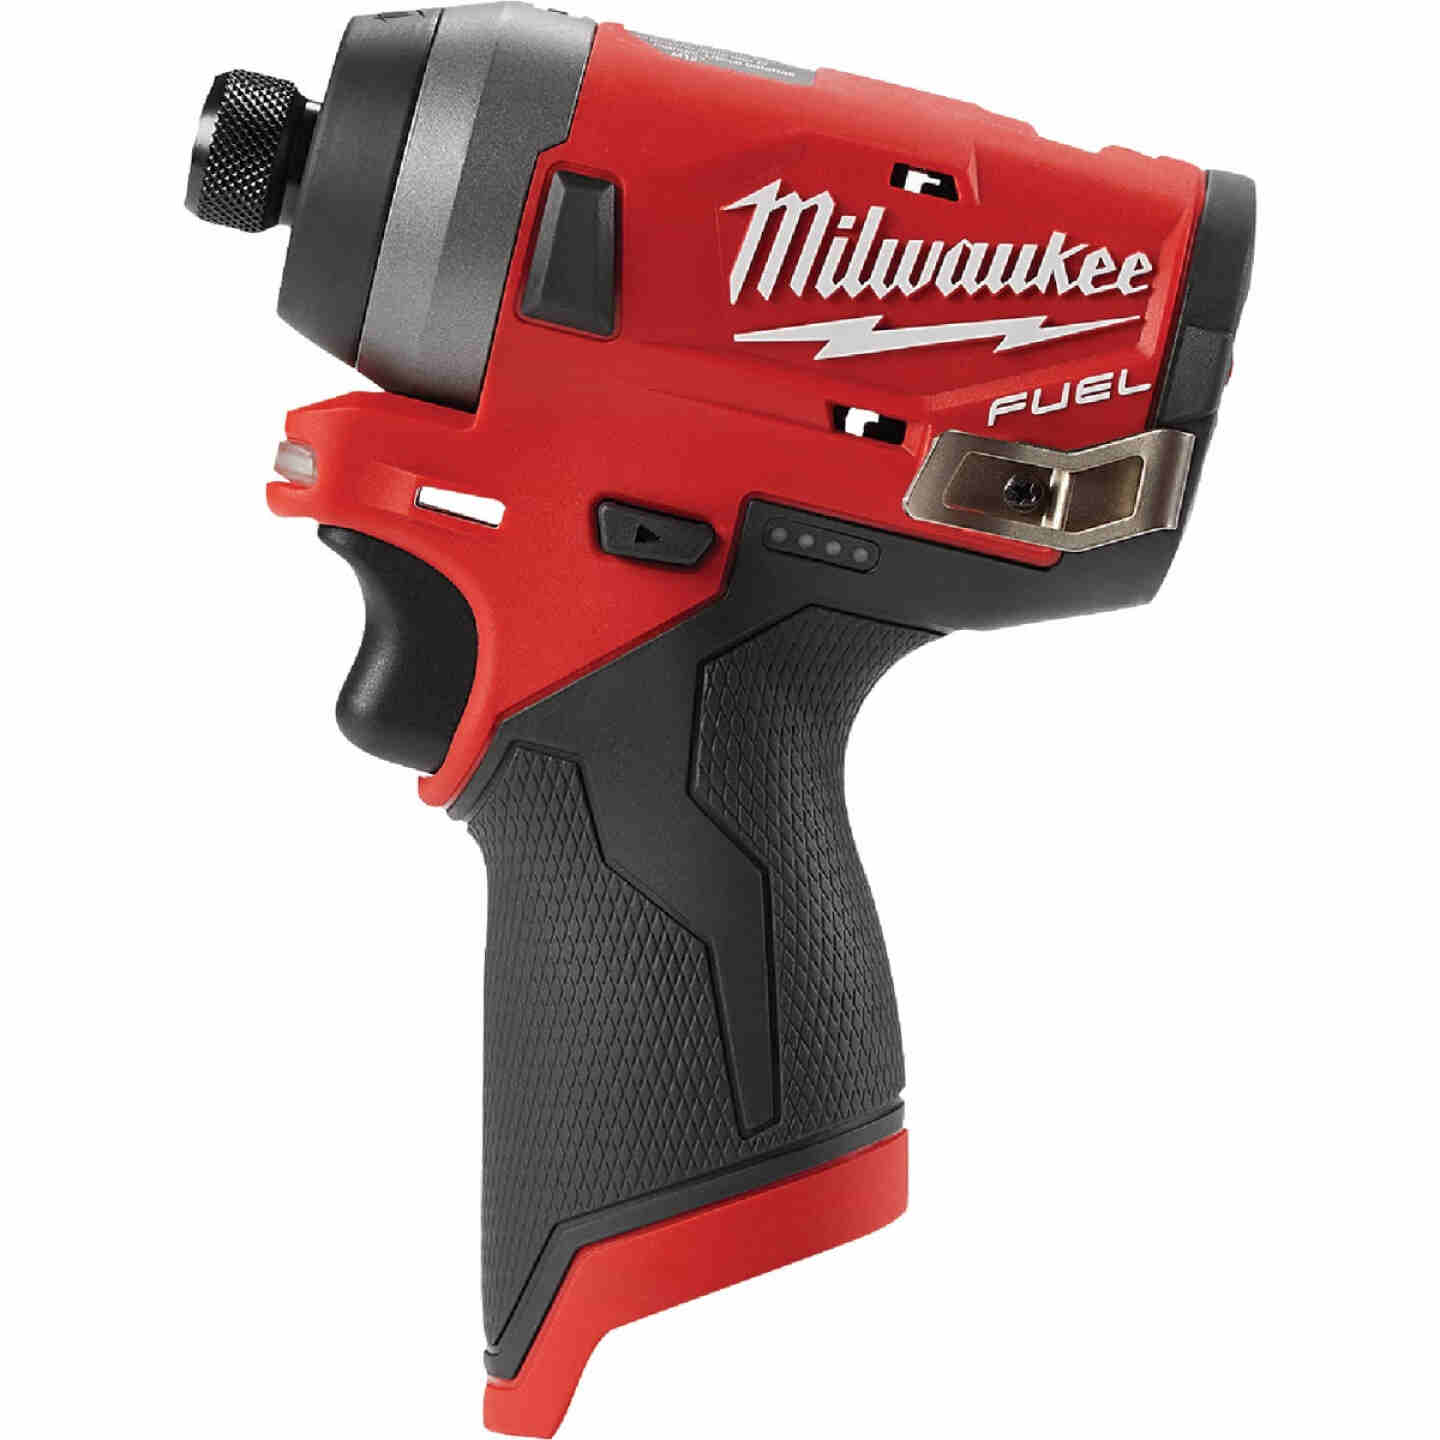 Milwaukee M12 FUEL 12 Volt Lithium-Ion Brushless 1/4 In. Hex Cordless Impact Driver (Bare Tool) Image 4